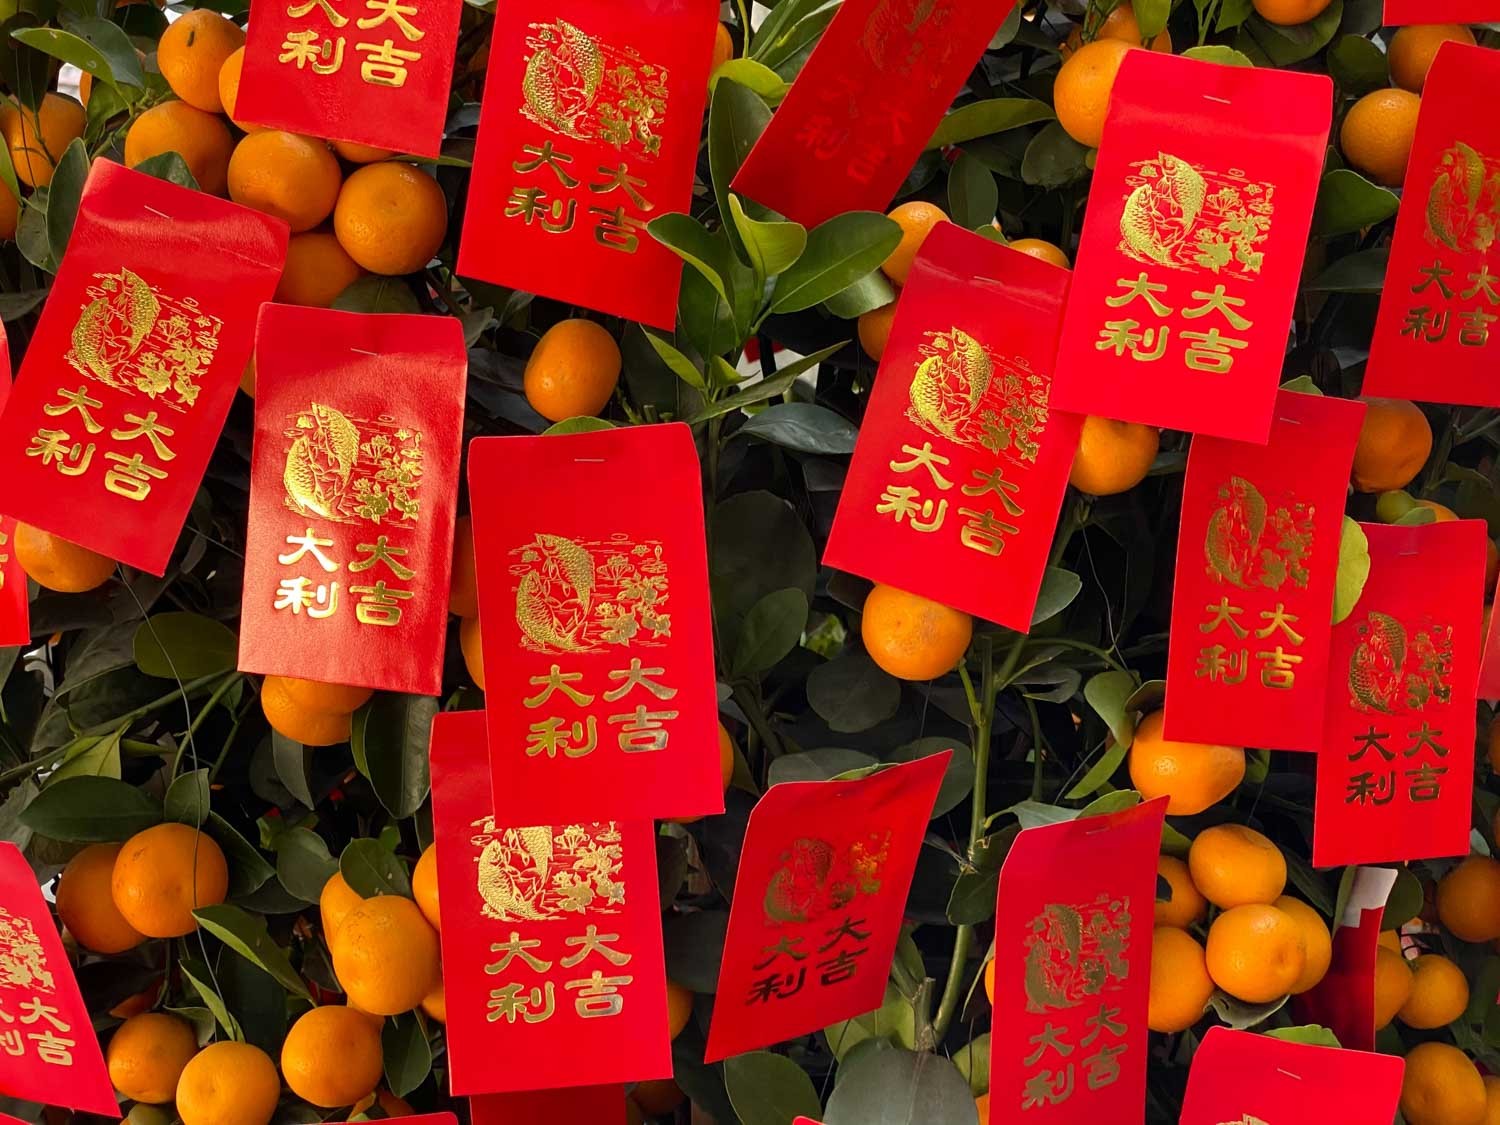 Chinese New Year oranges hanging from tree with Chinese signs in red with gold lettering